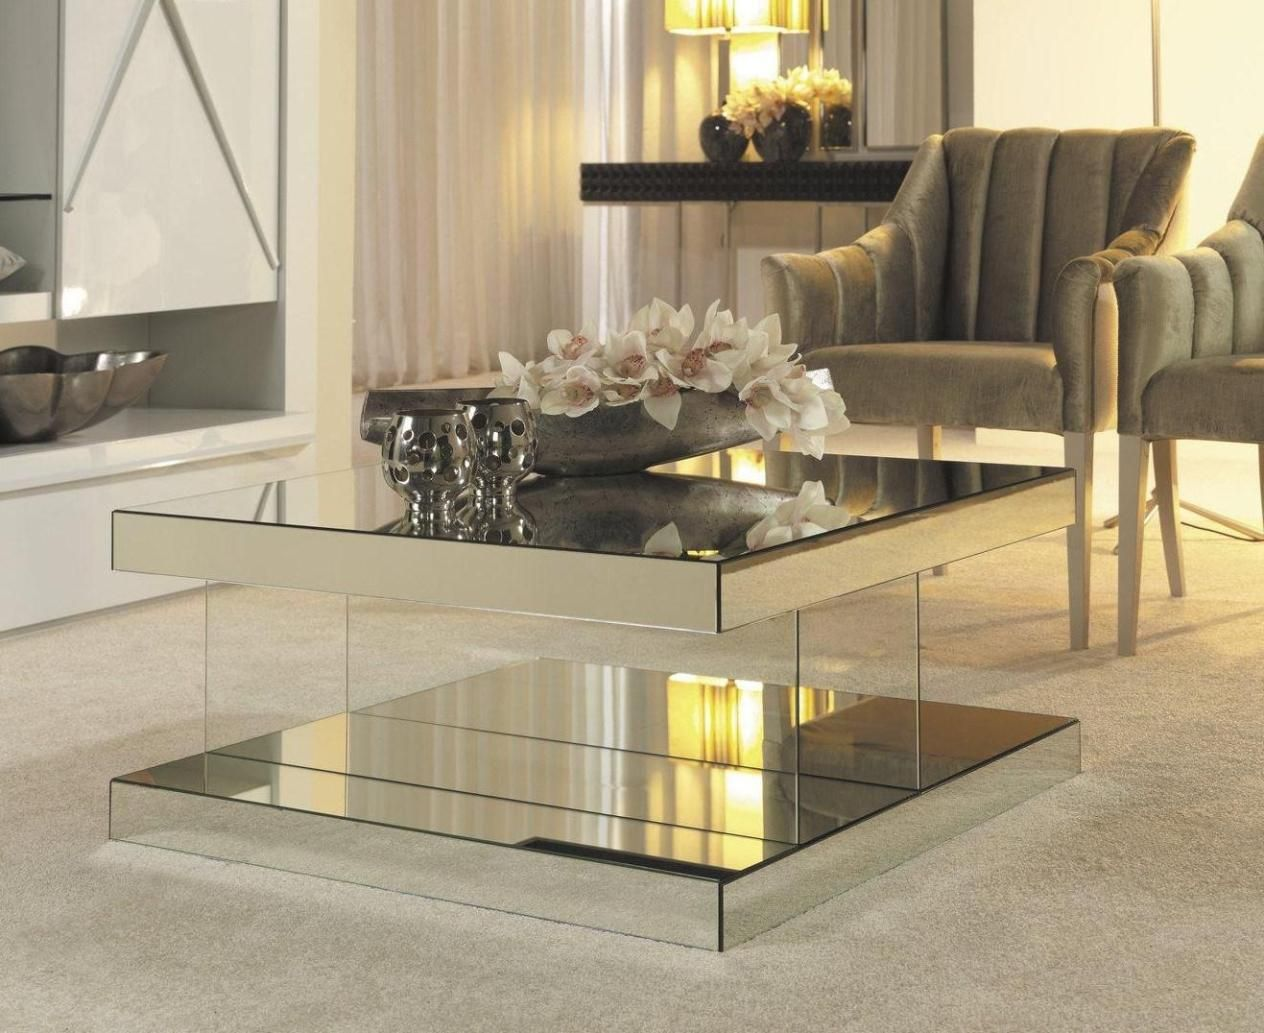 Image Result For How To Decorate A Mirrored Coffee Table Coffee Table Mirrored Coffee Tables Square Mirrored Coffee Table [ 1033 x 1264 Pixel ]